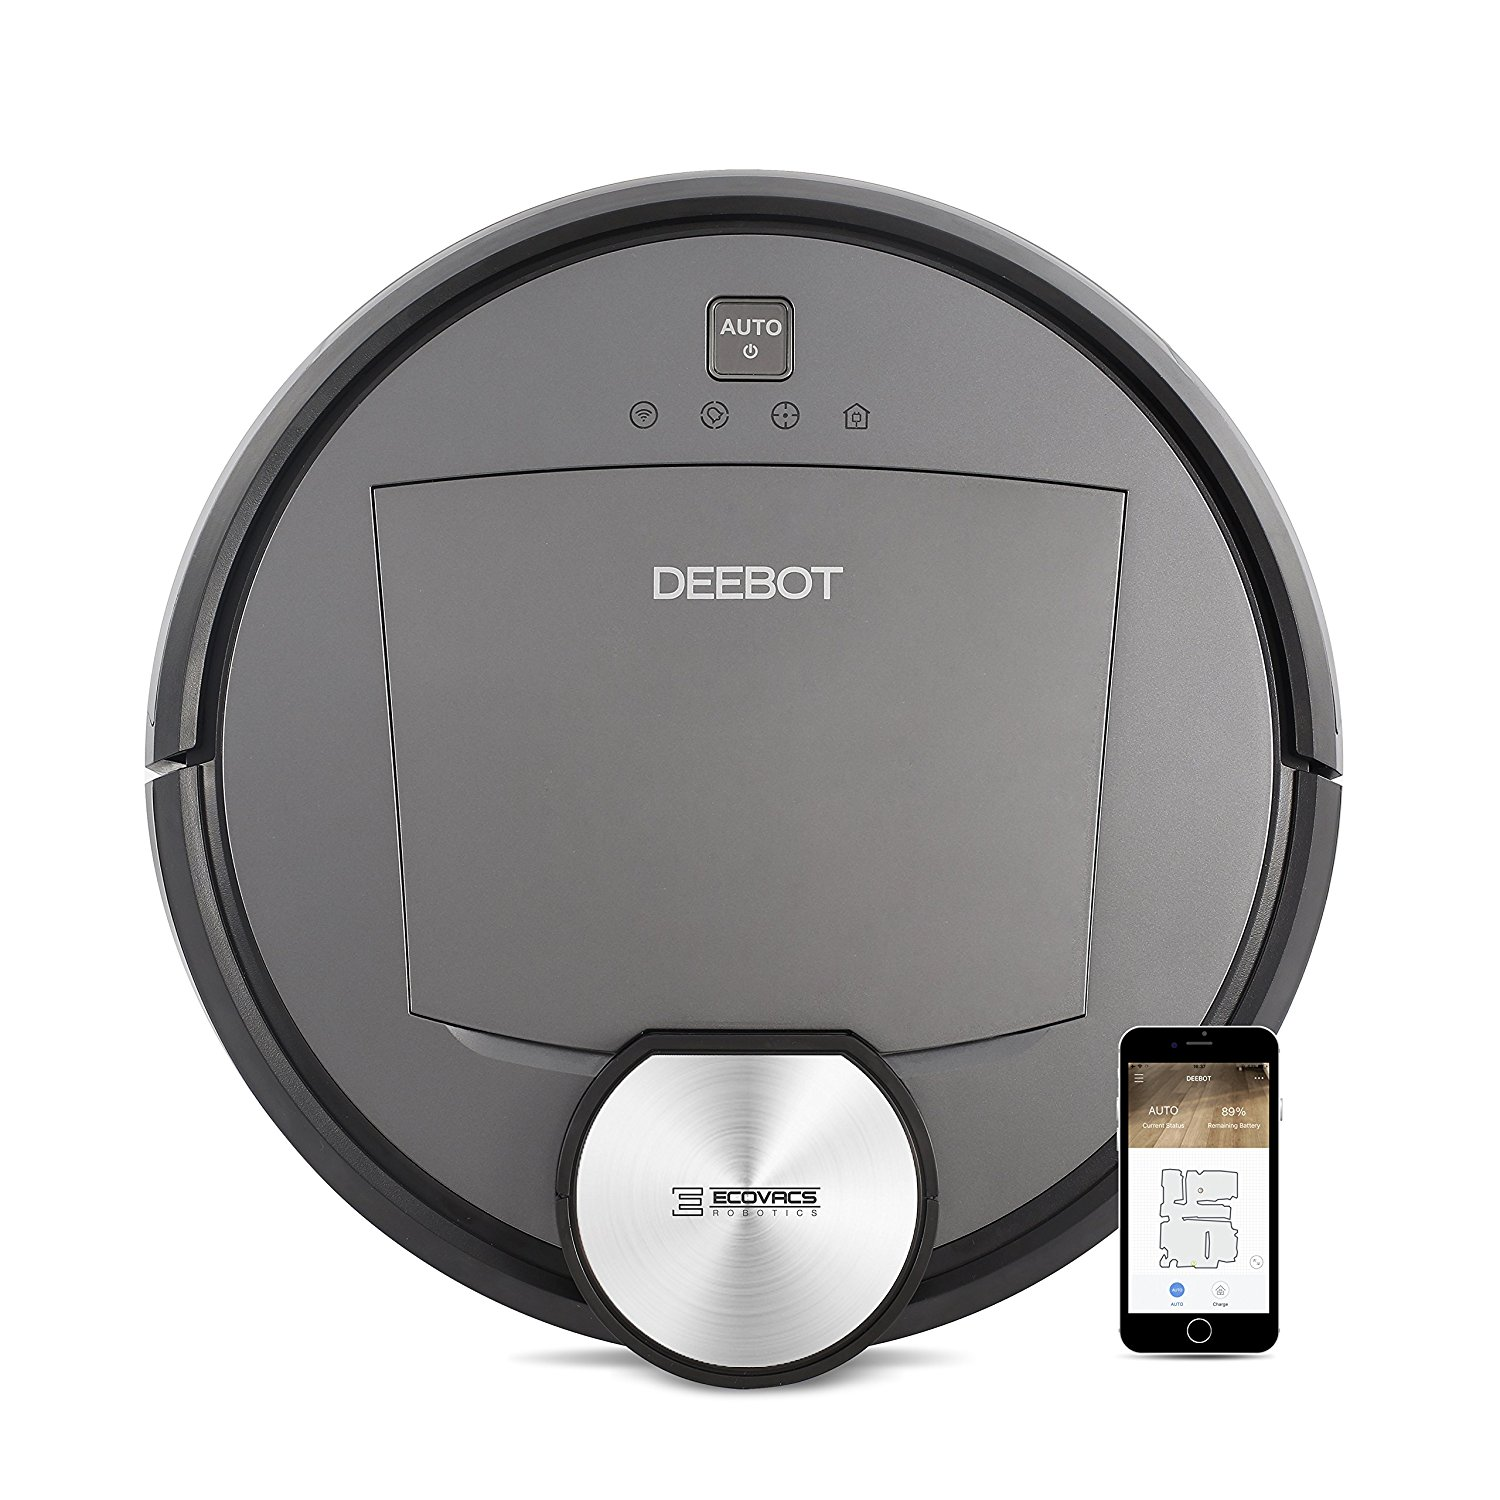 Gadgets Smart Sweeper Maps Territory To Clean